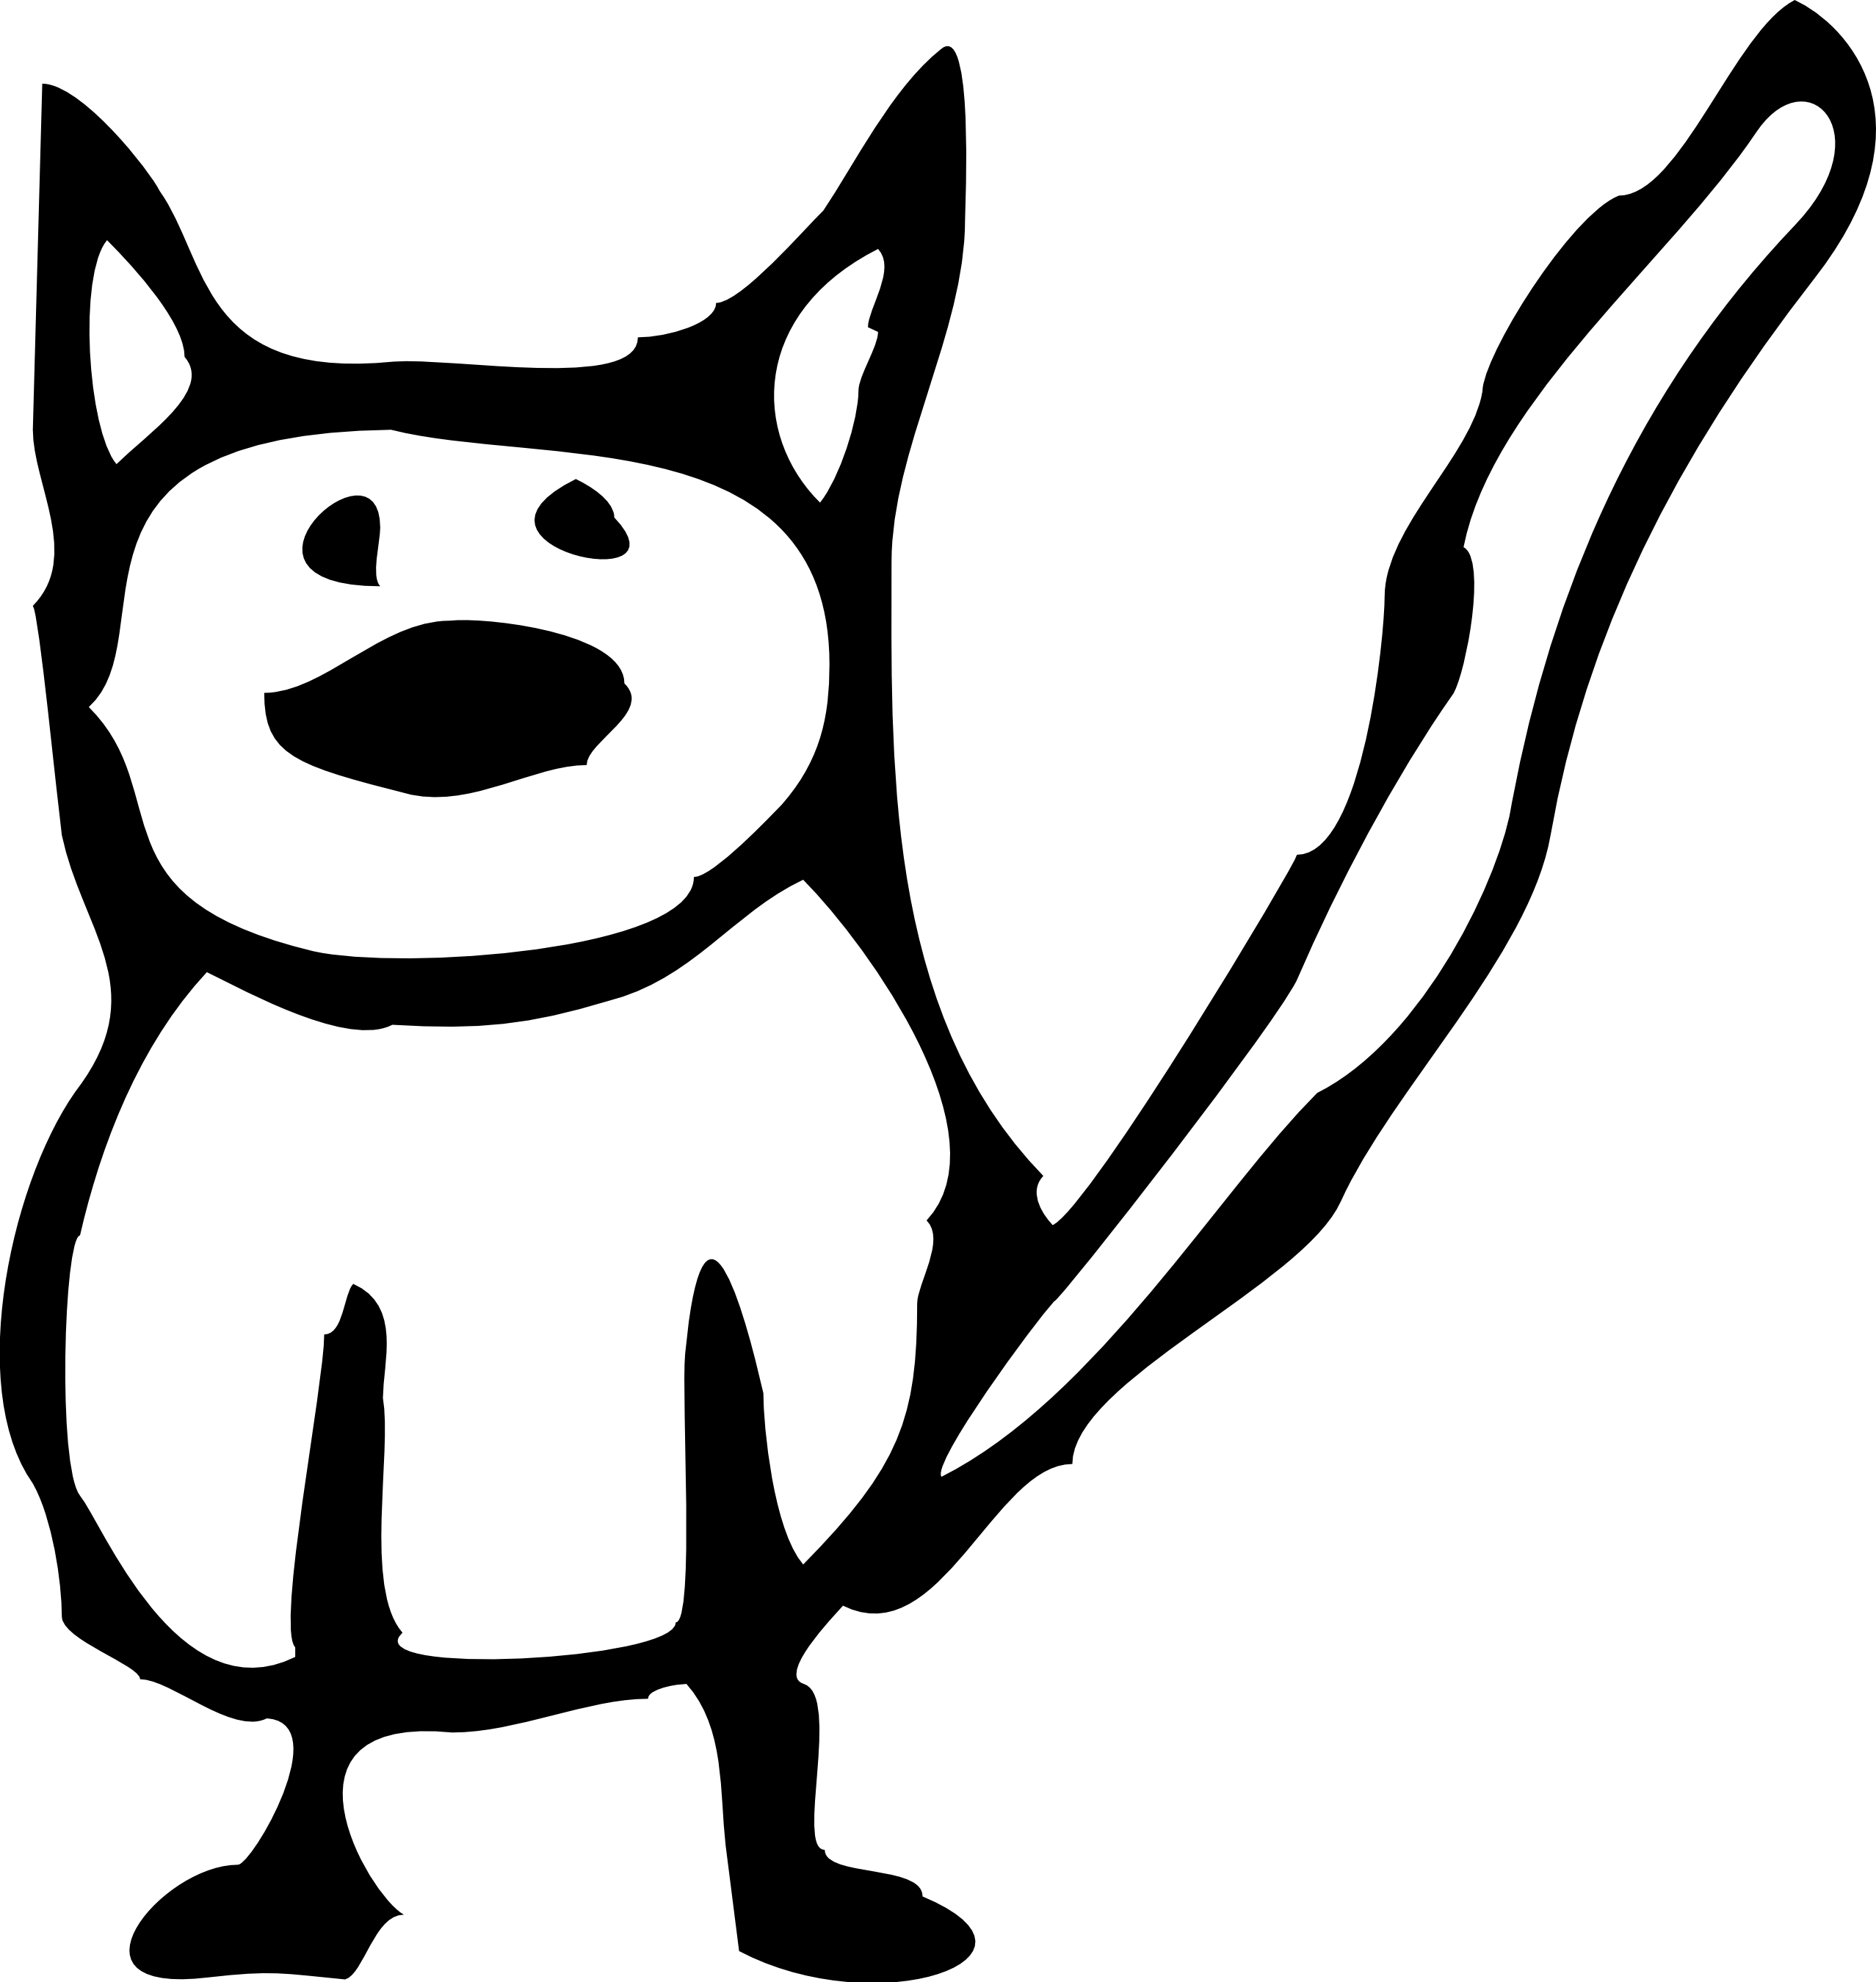 Cat Clip Art Black And White | Clipart Panda - Free Clipart Images clip royalty free library